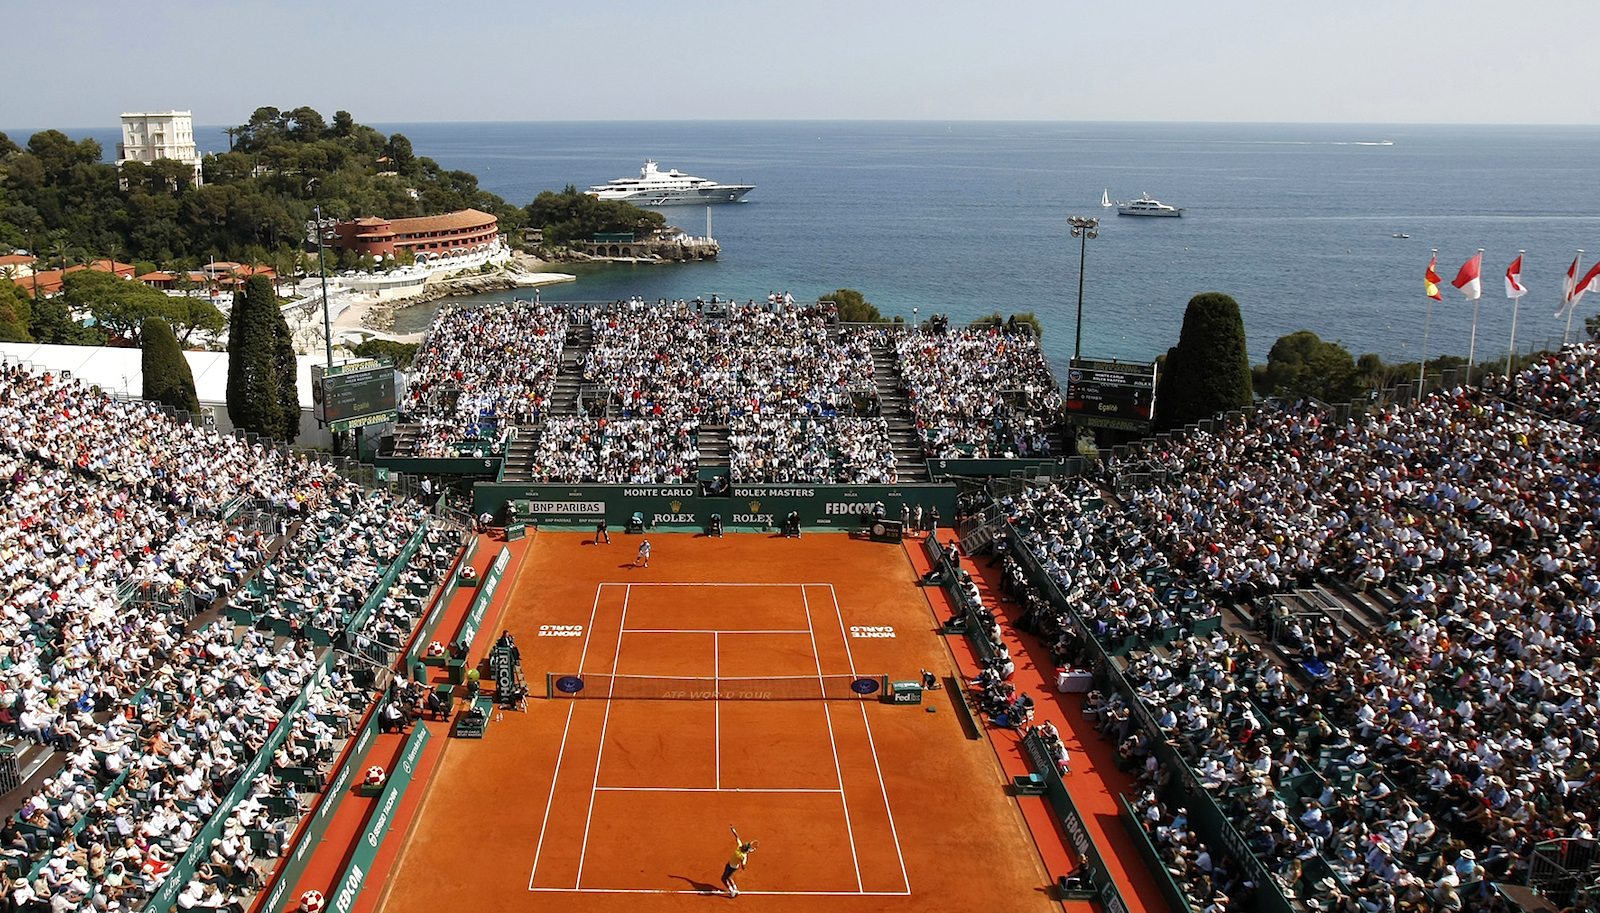 Monte-Carlo Masters - Tennis tournament in Monaco